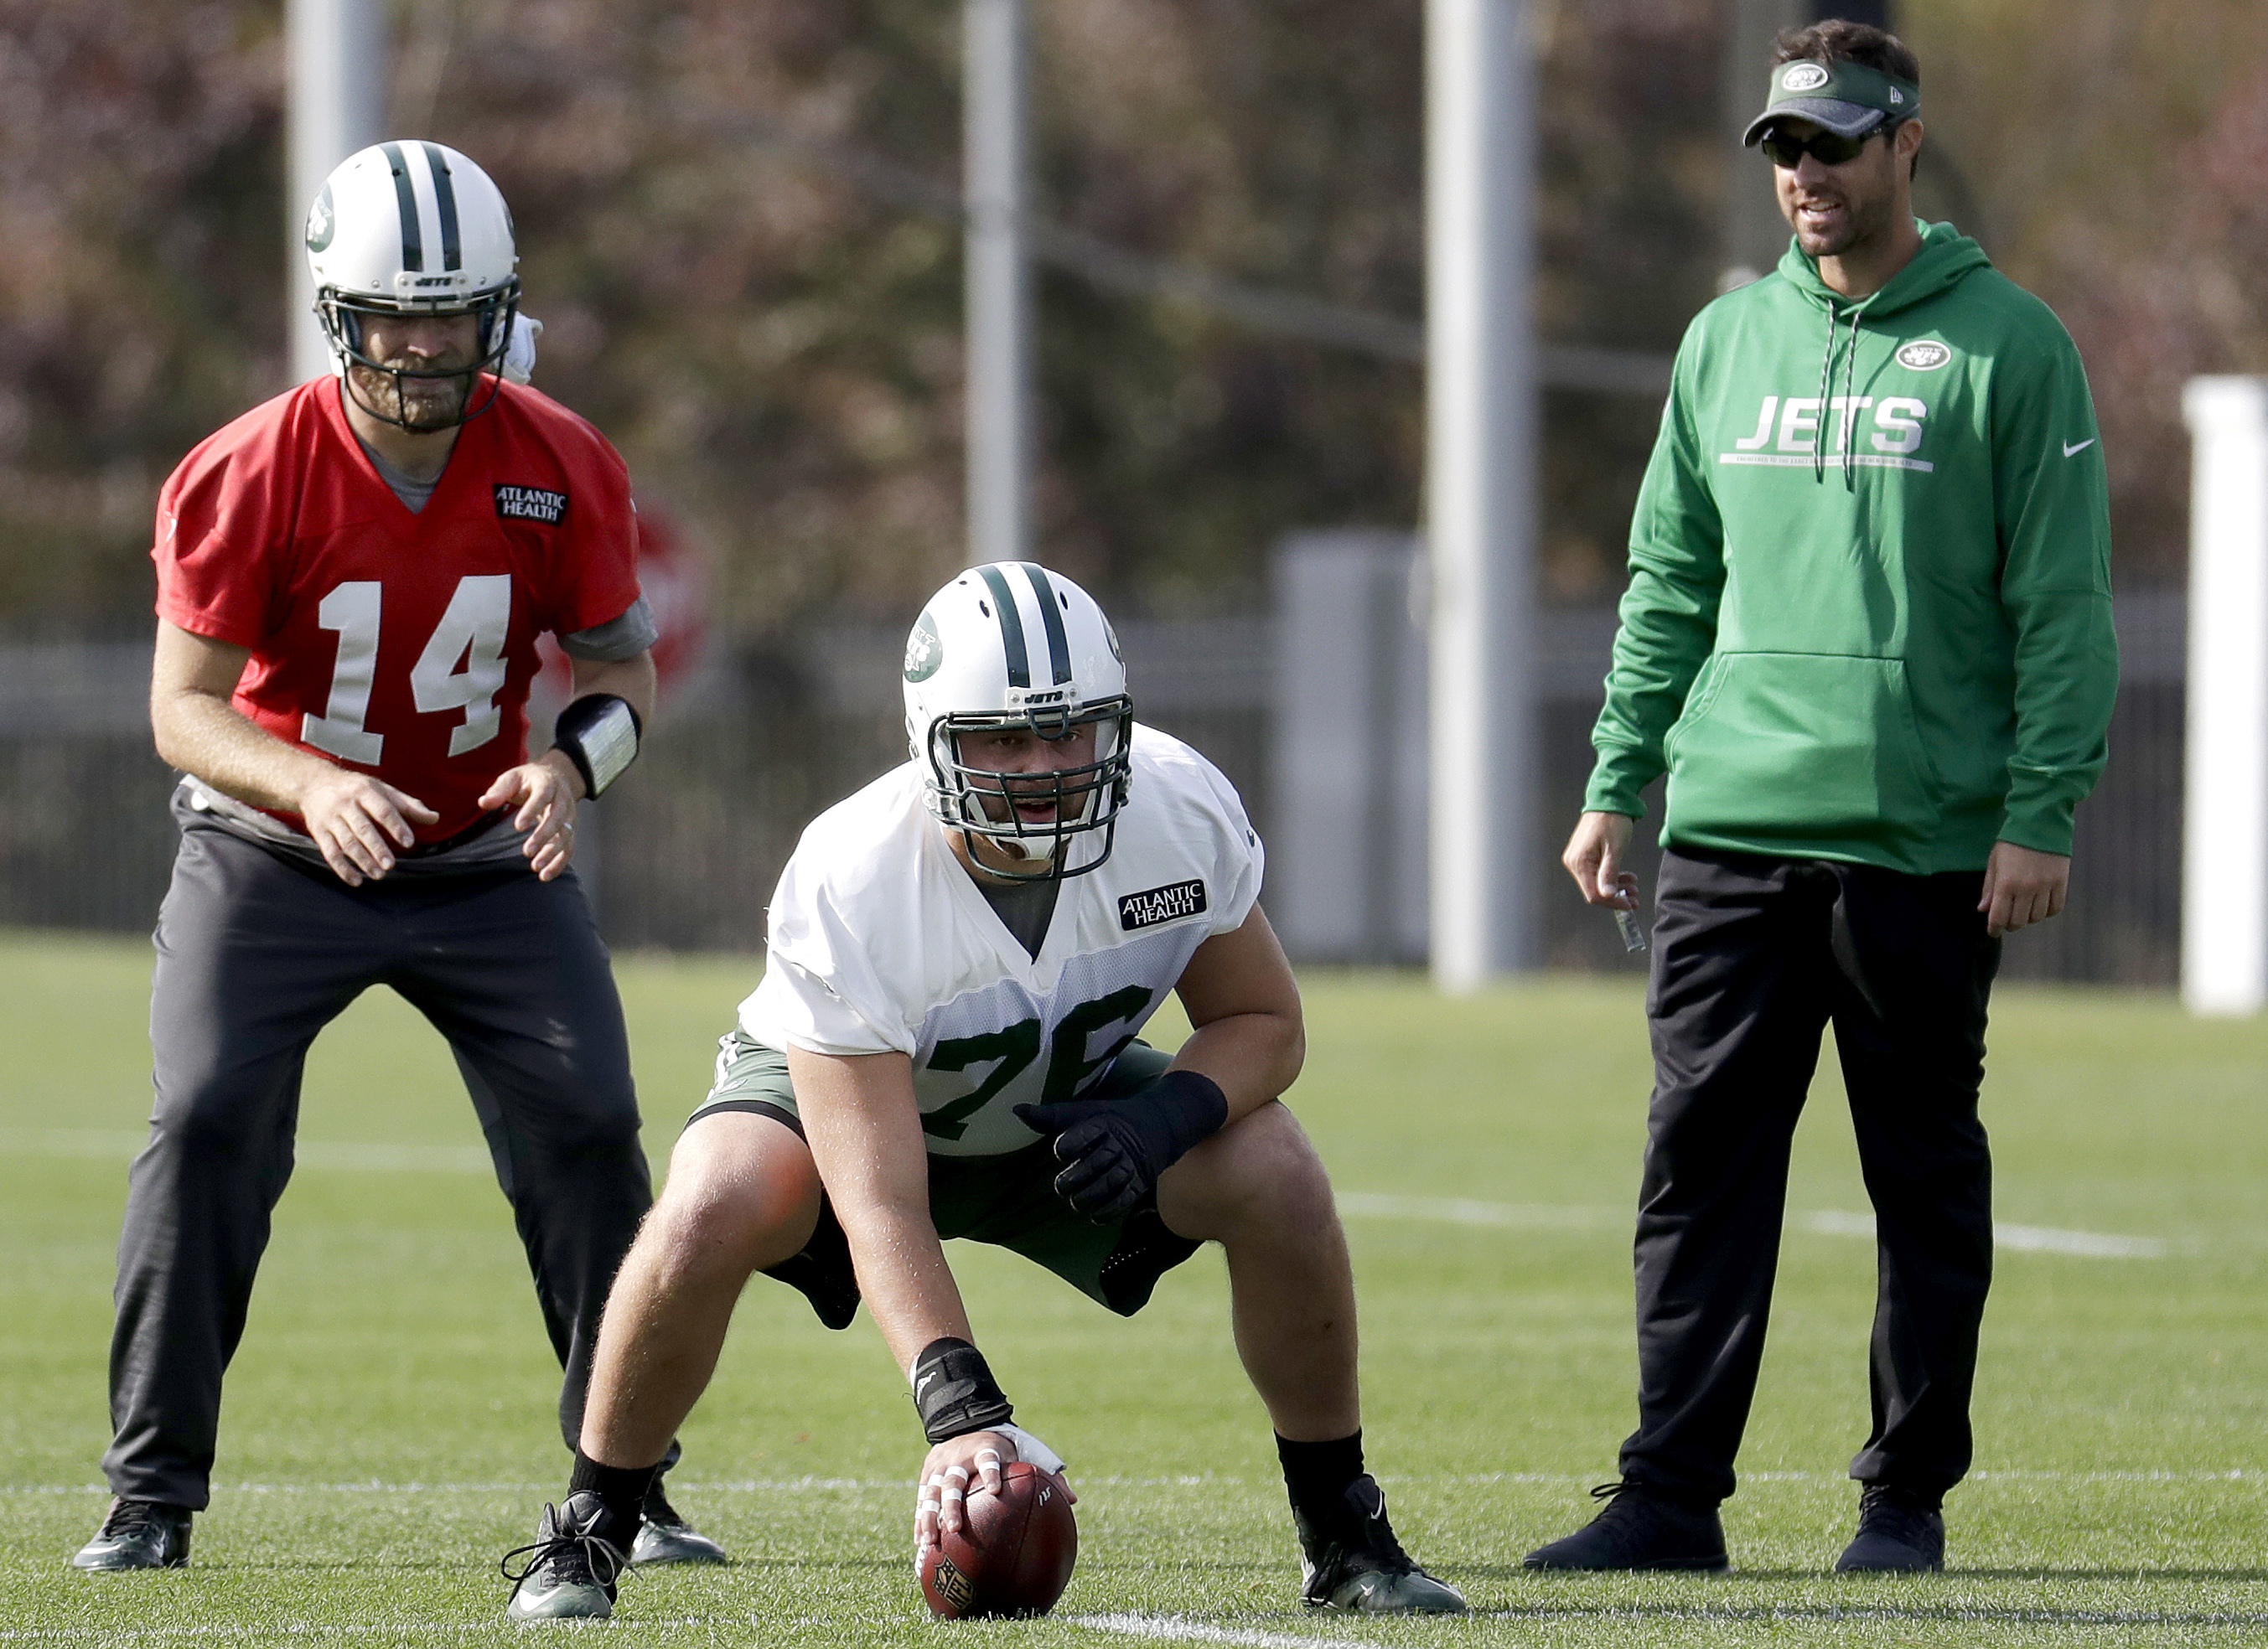 FILE - In this Nov. 2, 2016, file photo, New York Jets' Ryan Fitzpatrick, left, prepares for the snap from center Wesley Johnson during NFL football practice in Florham Park, N.J. Johnson is about to get lots more playing time for the Jets as he replaces